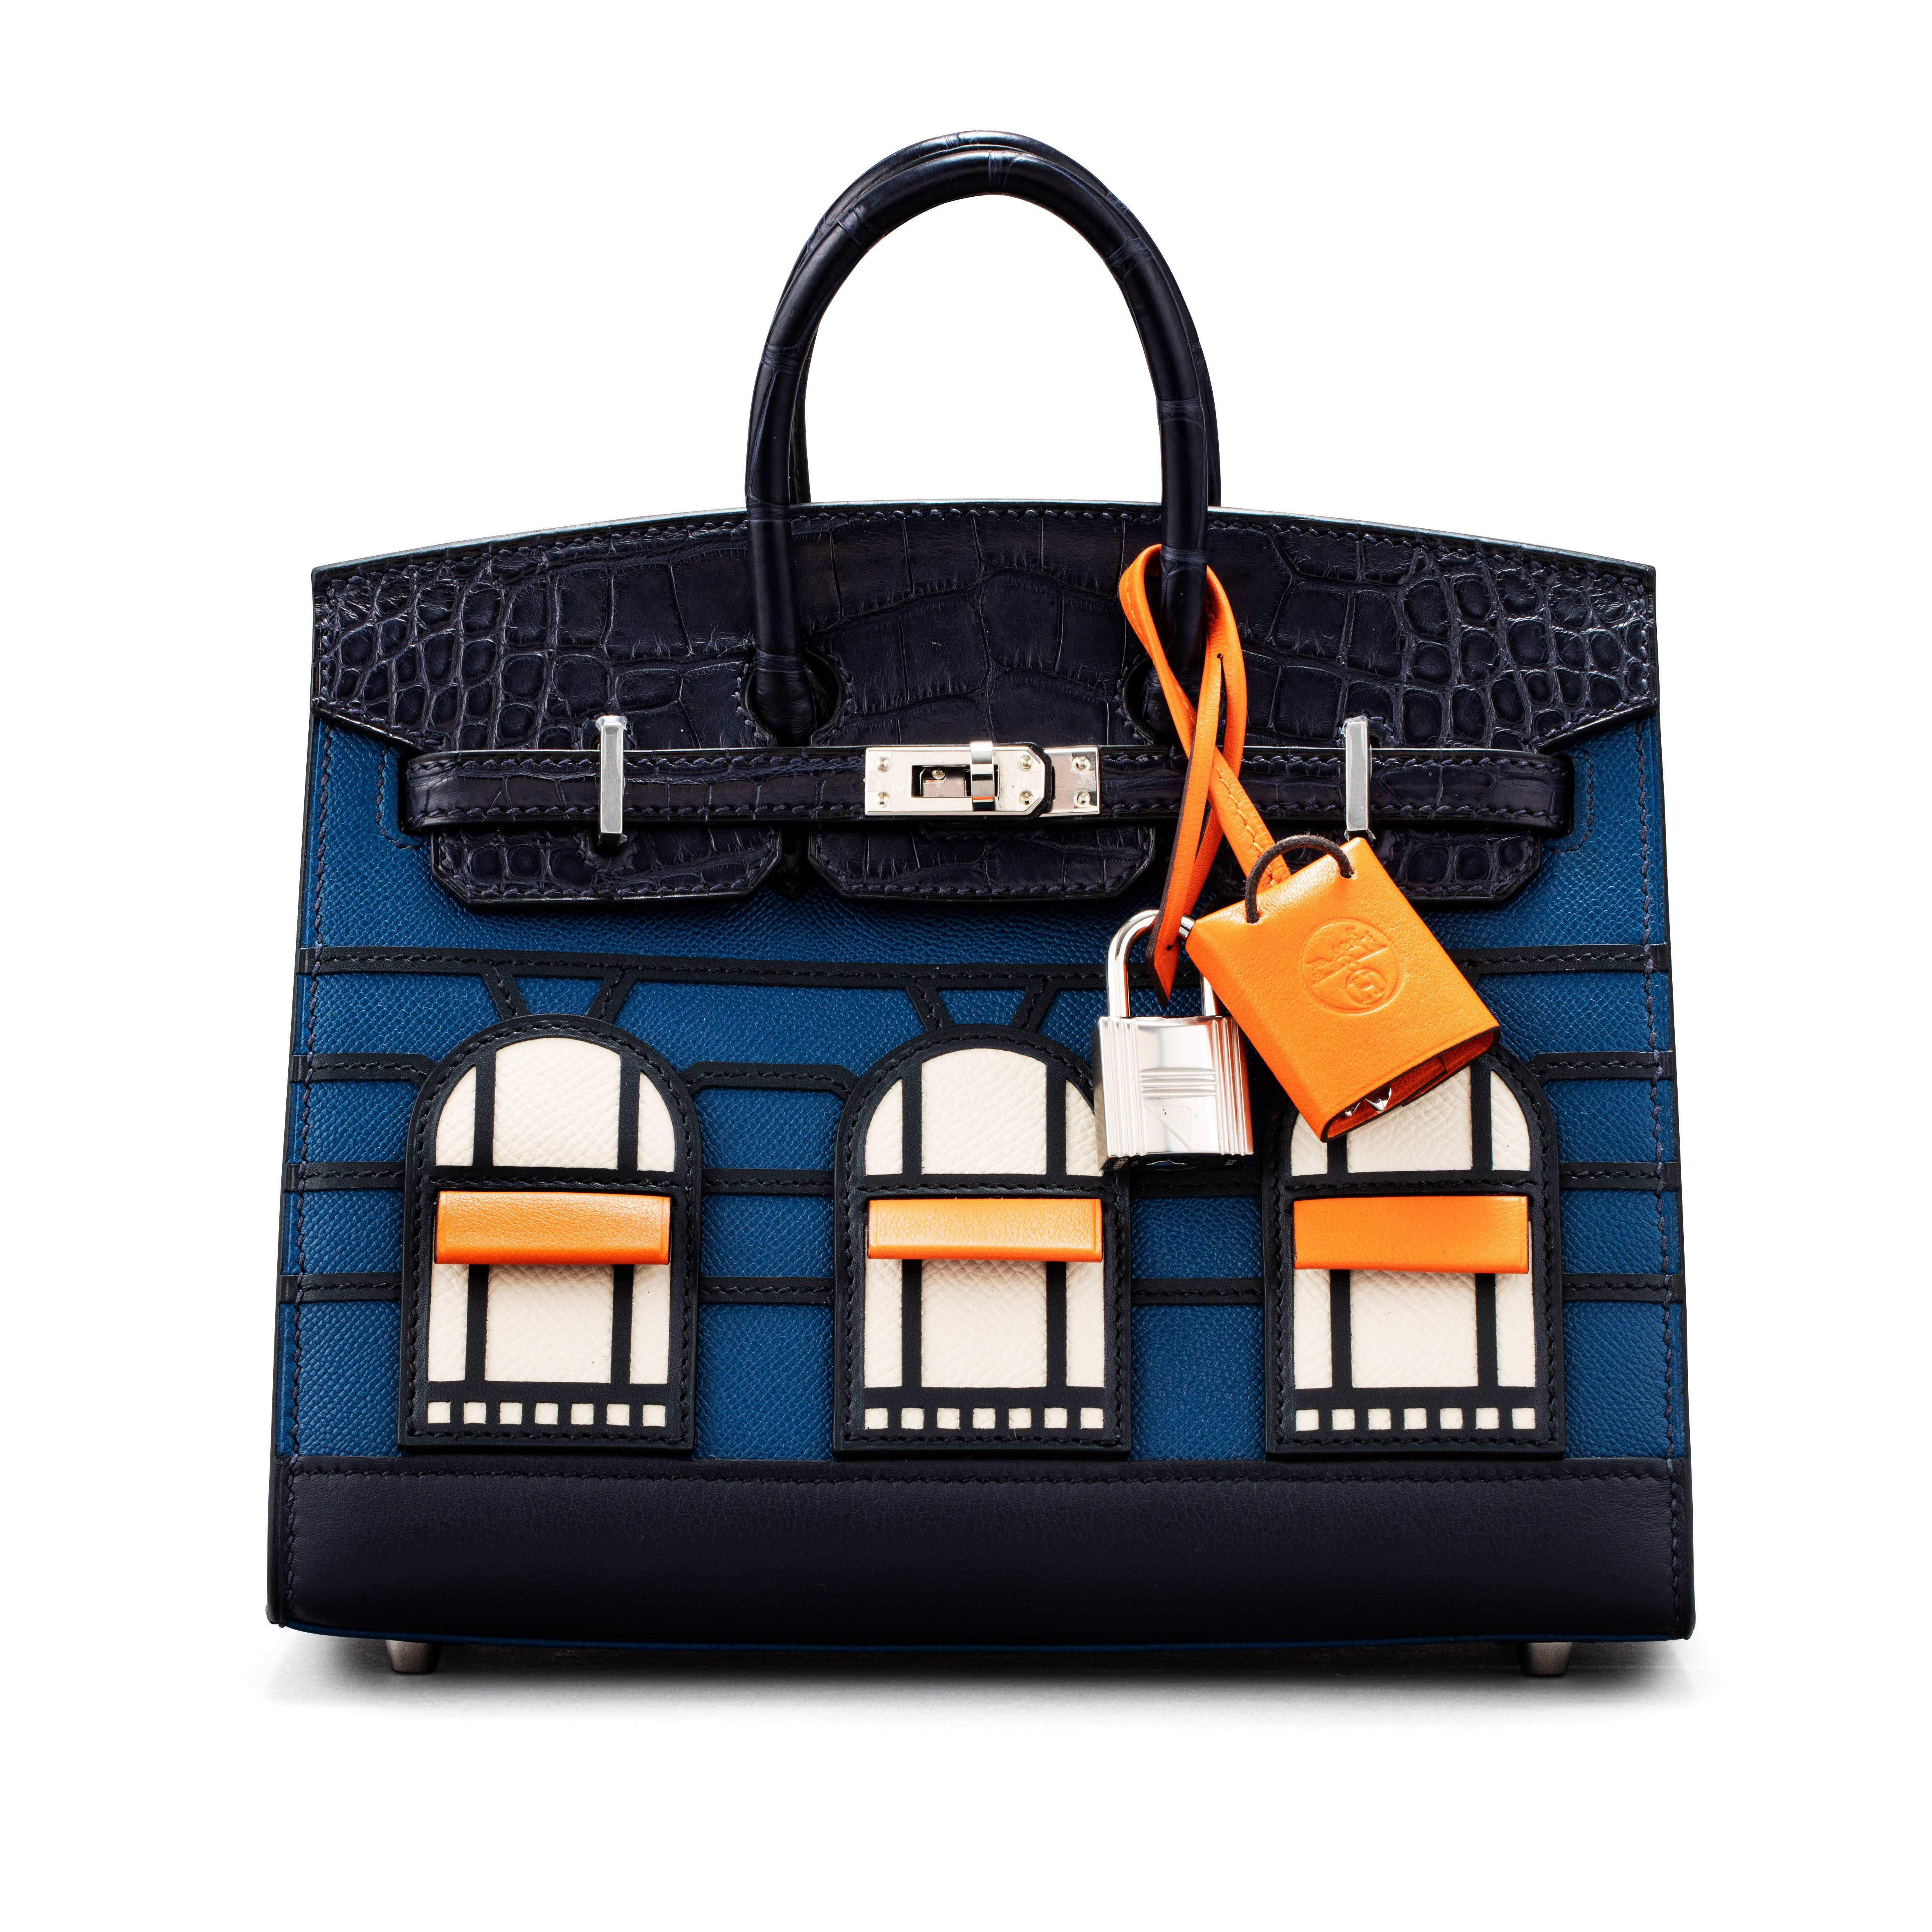 View full screen - View 1 of Lot 20. Limited Edition Birkin Faubourg Sellier 20 in Veau Madame, Matte Alligator, Sombrero, Epsom and Swift Leather with Palladium Hardware, 2019.